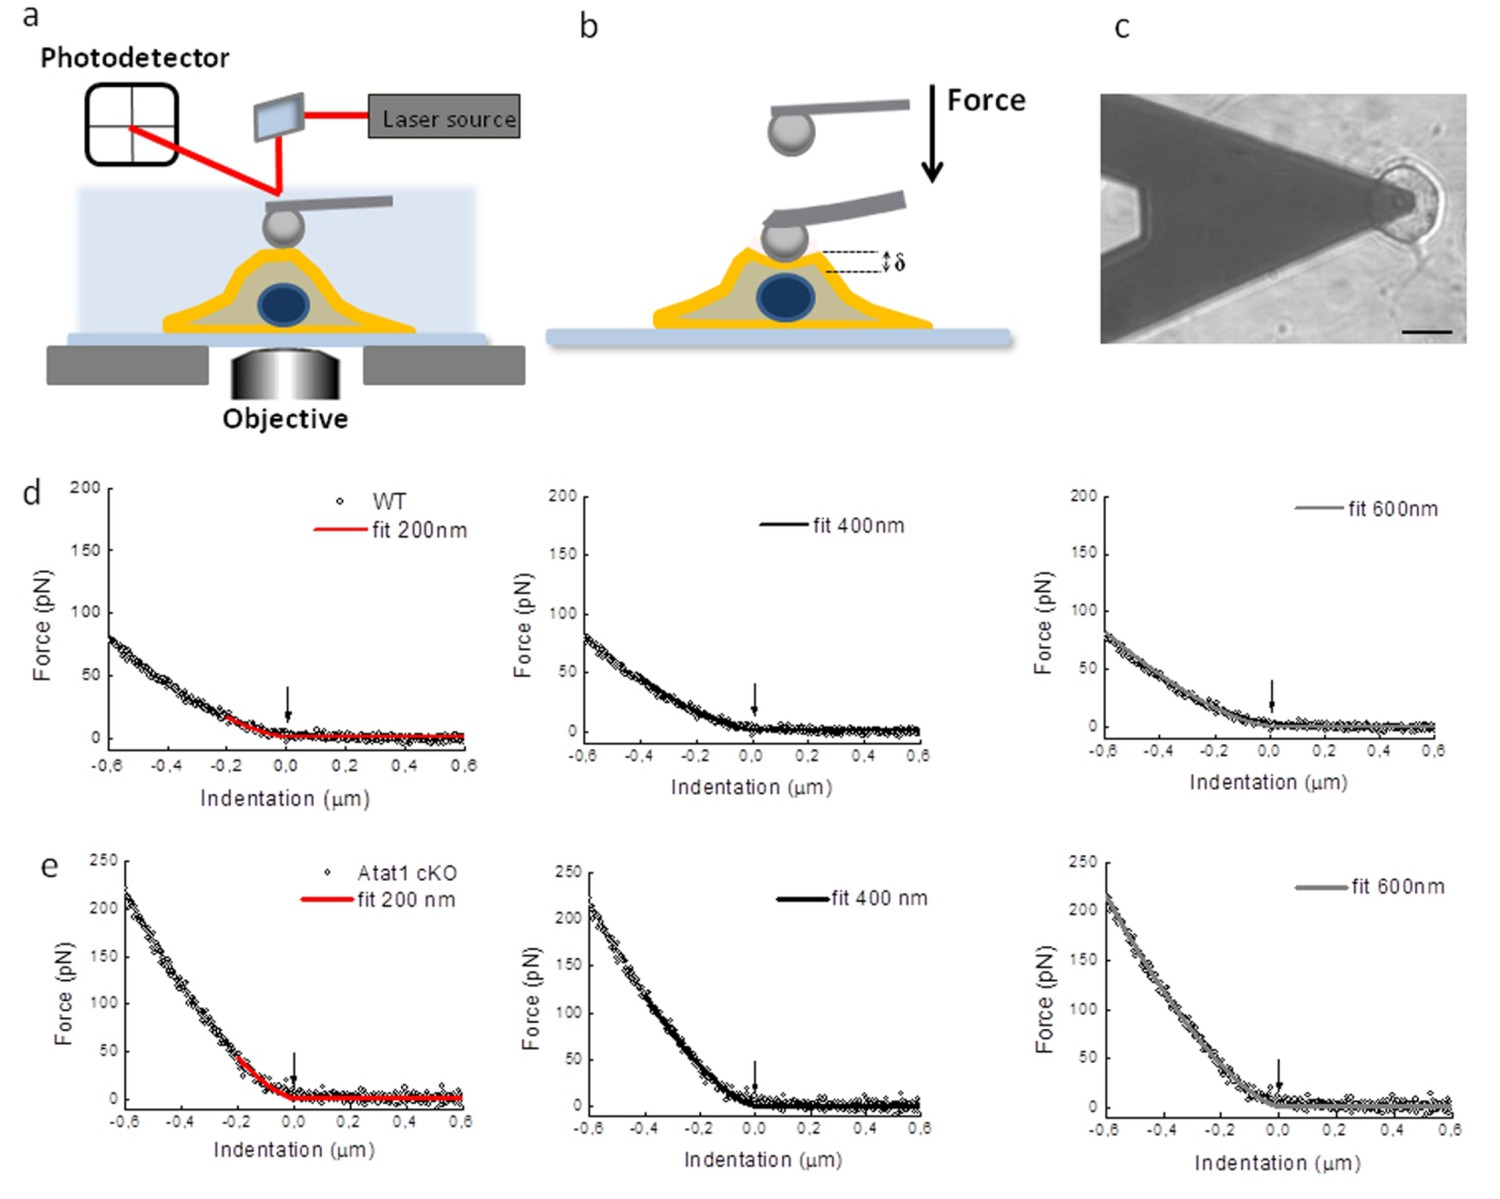 Acetylated Tubulin Is Essential For Touch Sensation In Mice Elife Backflow Preventer Diagram Car Tuning Atomic Force Microscopy Of Drg From Atat1cko